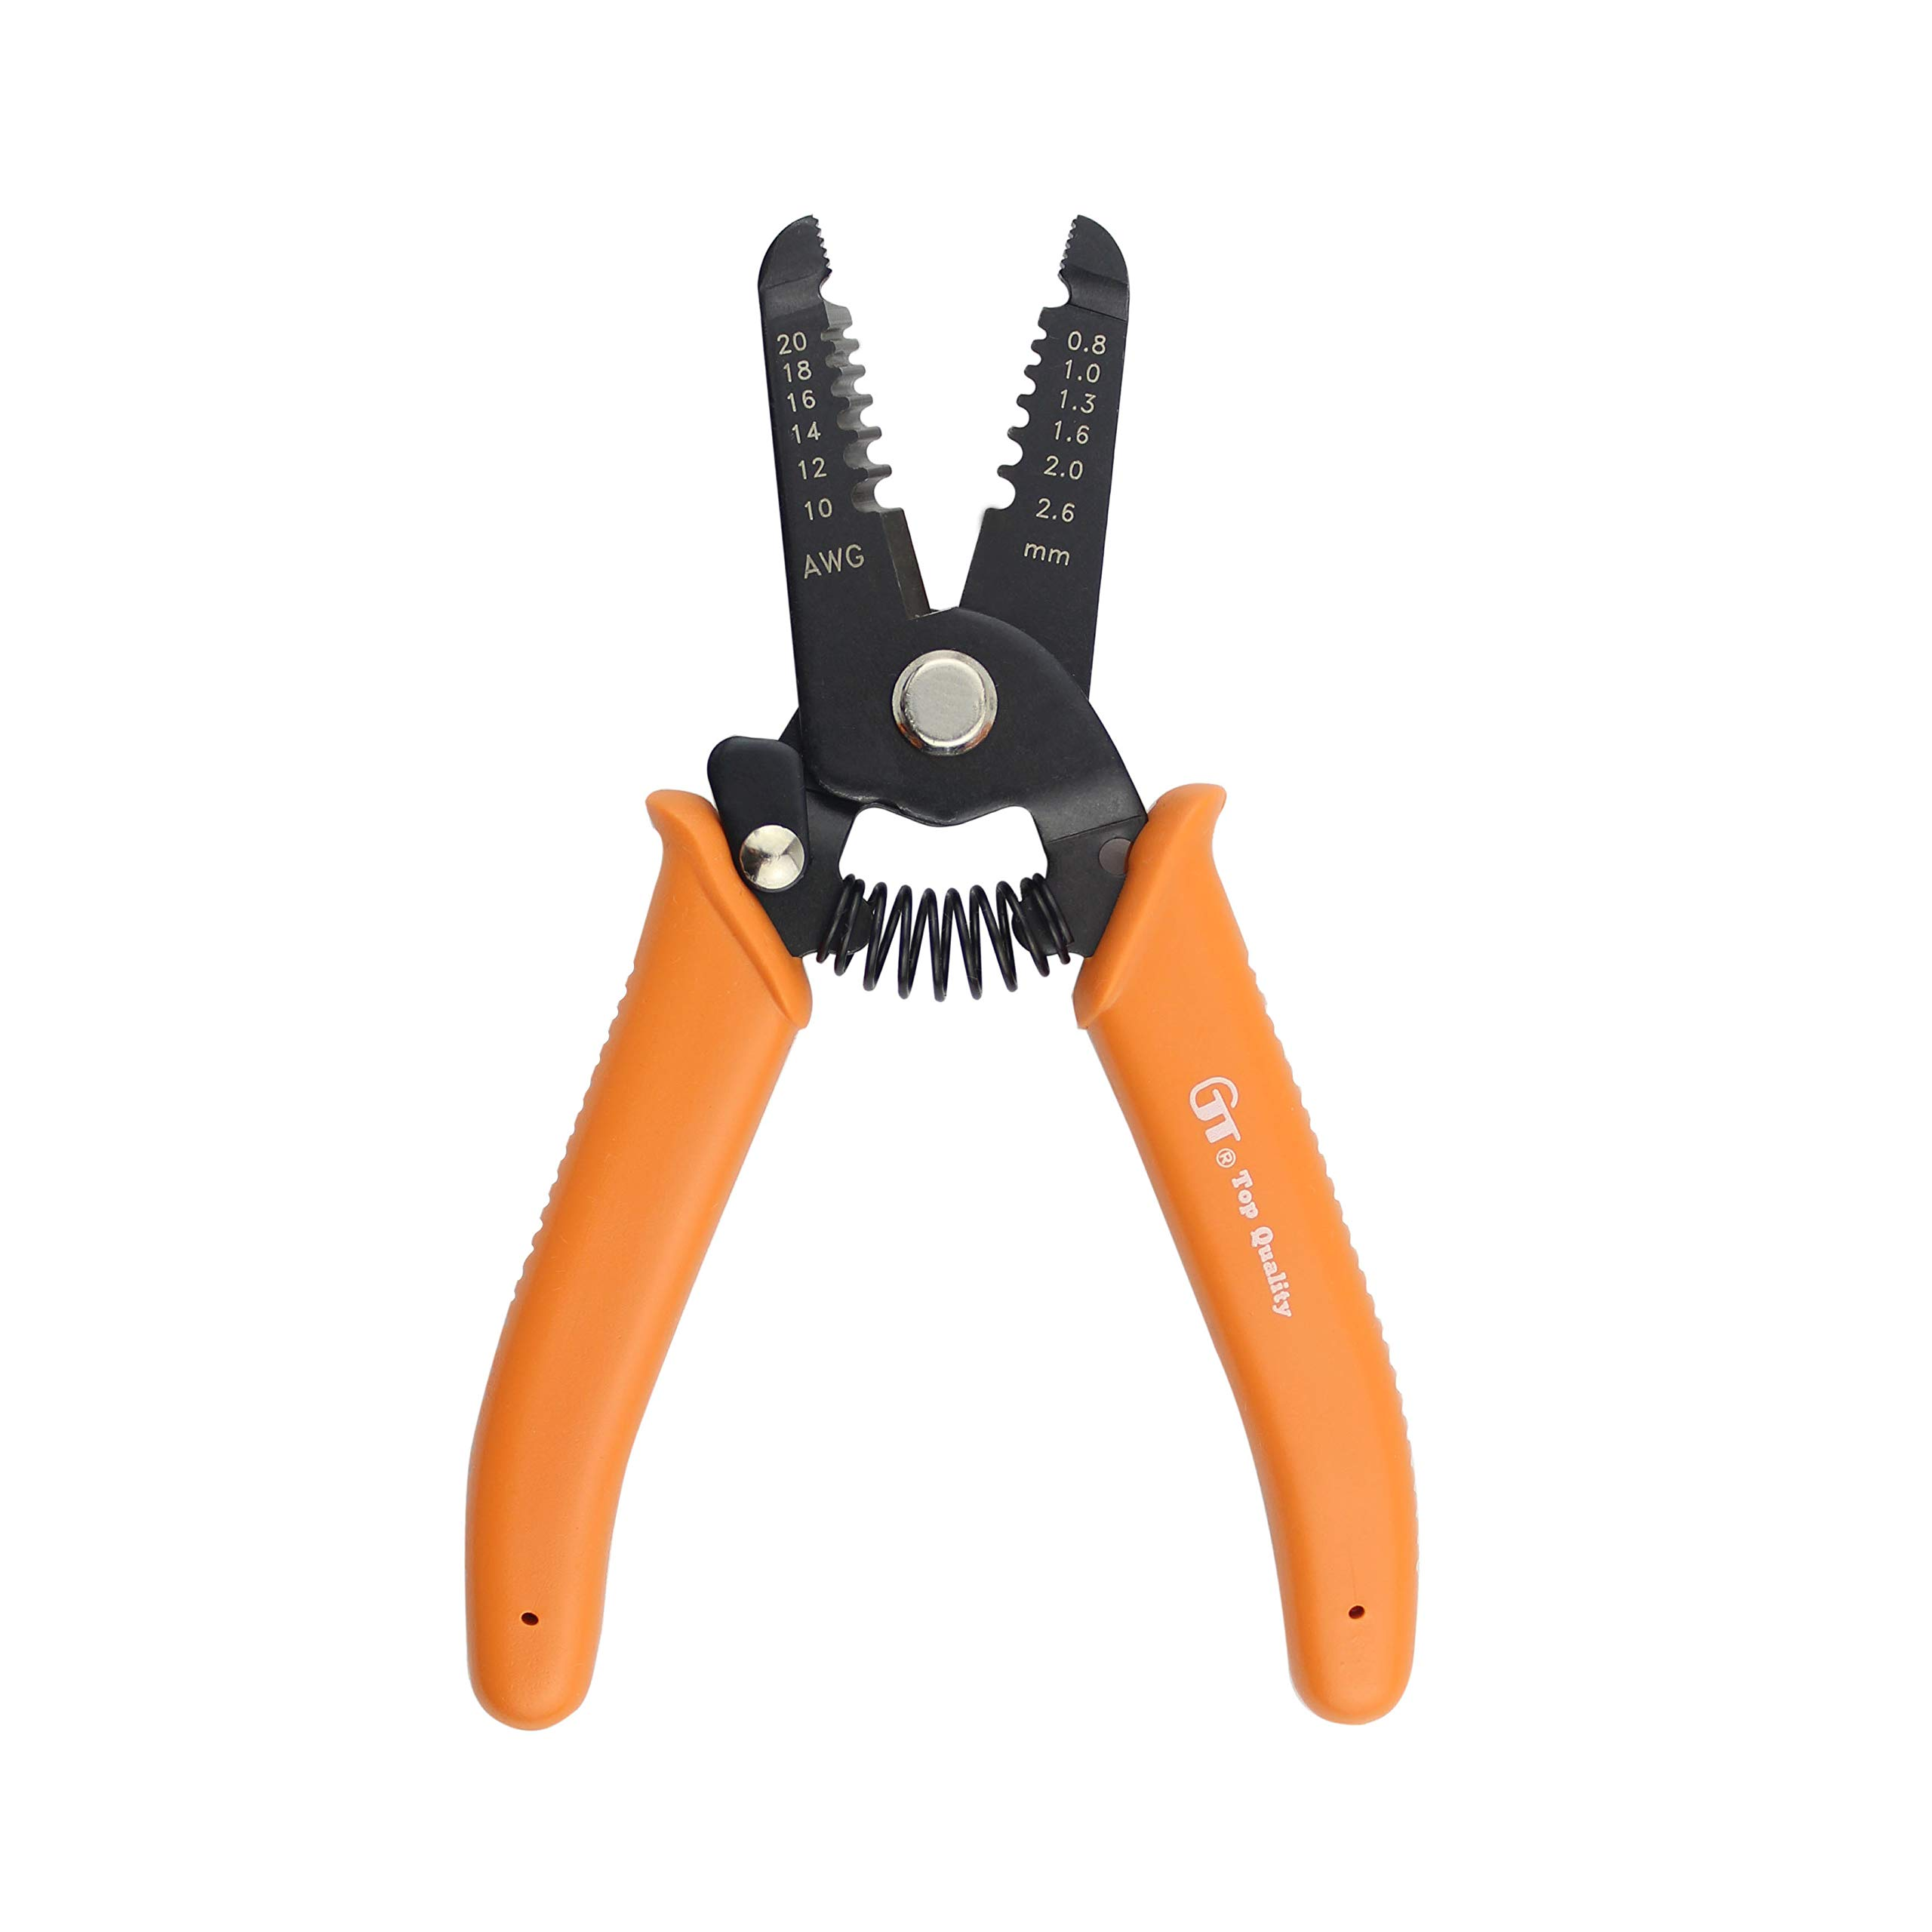 "J.VOLT HTL3260 Wire Stripper 10-20 AWG, Stranded Wire Cutter, Solid Wire Cutter, with Safety Lock. 6"" Compact Size"